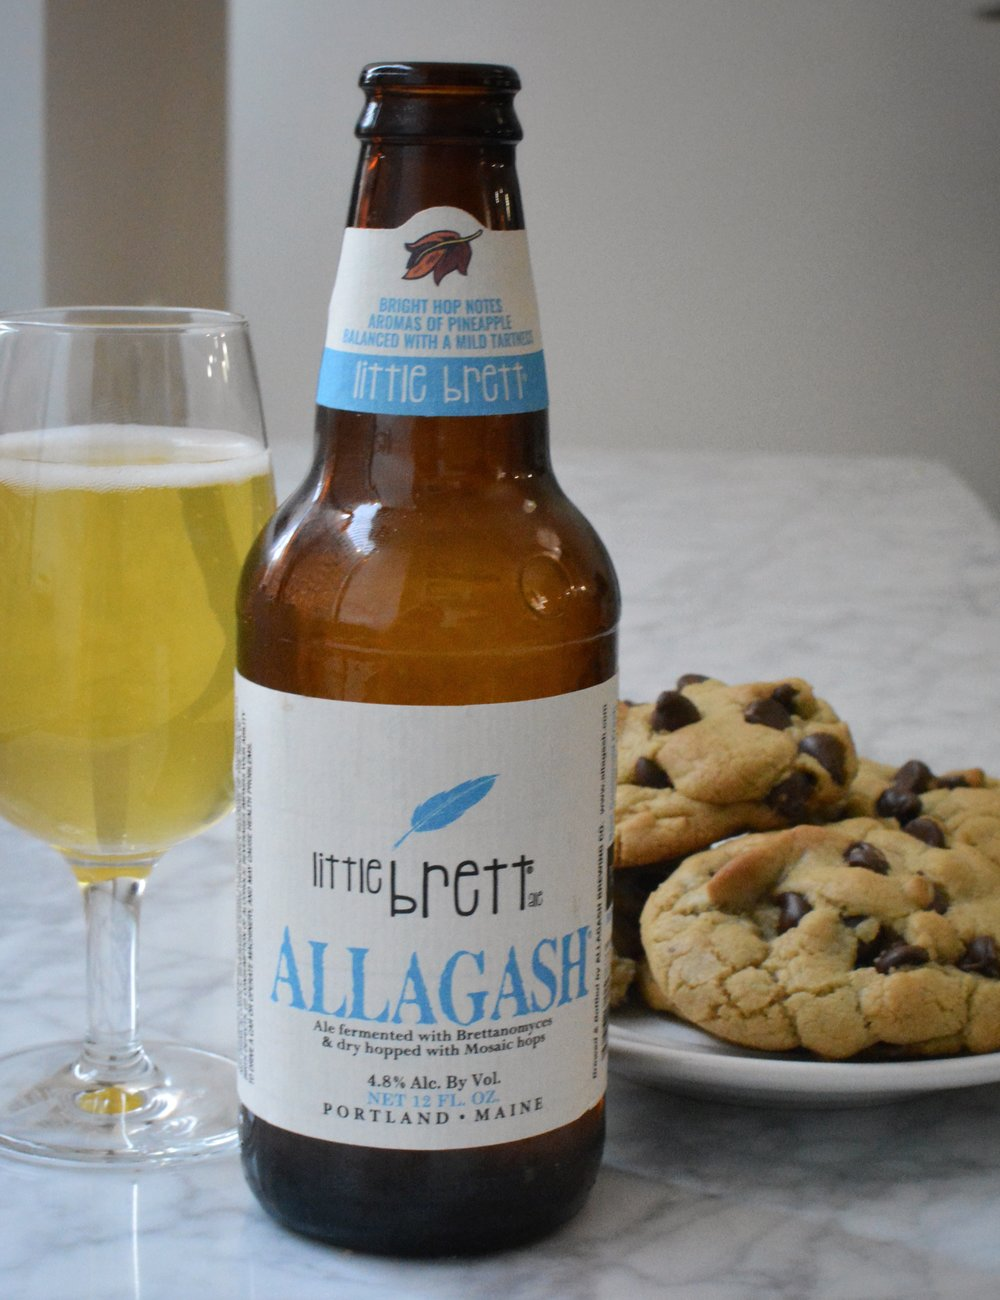 allagash-beer-cookie-pairing.jpg